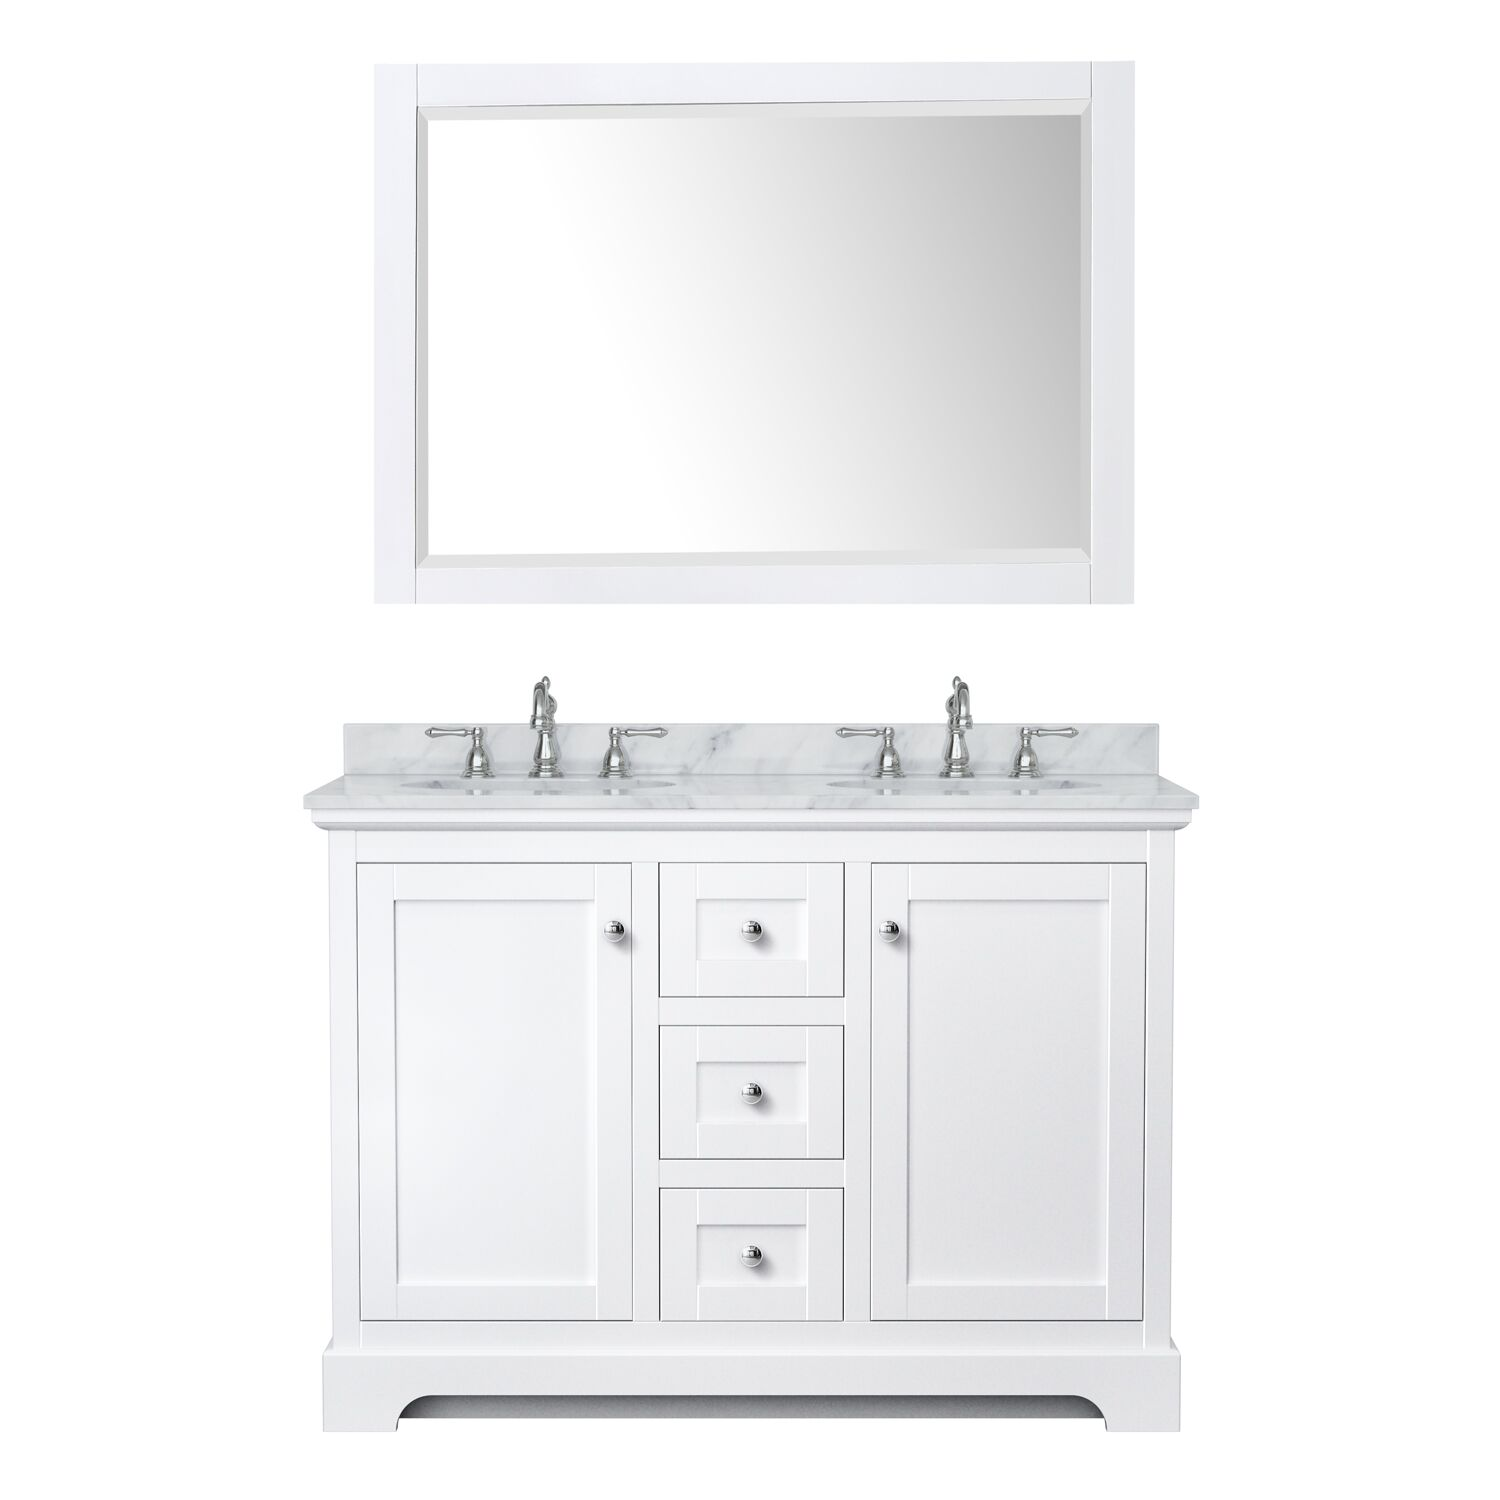 """48"""" Double Bathroom Vanity in White with Countertop, Sinks and Mirror Options"""